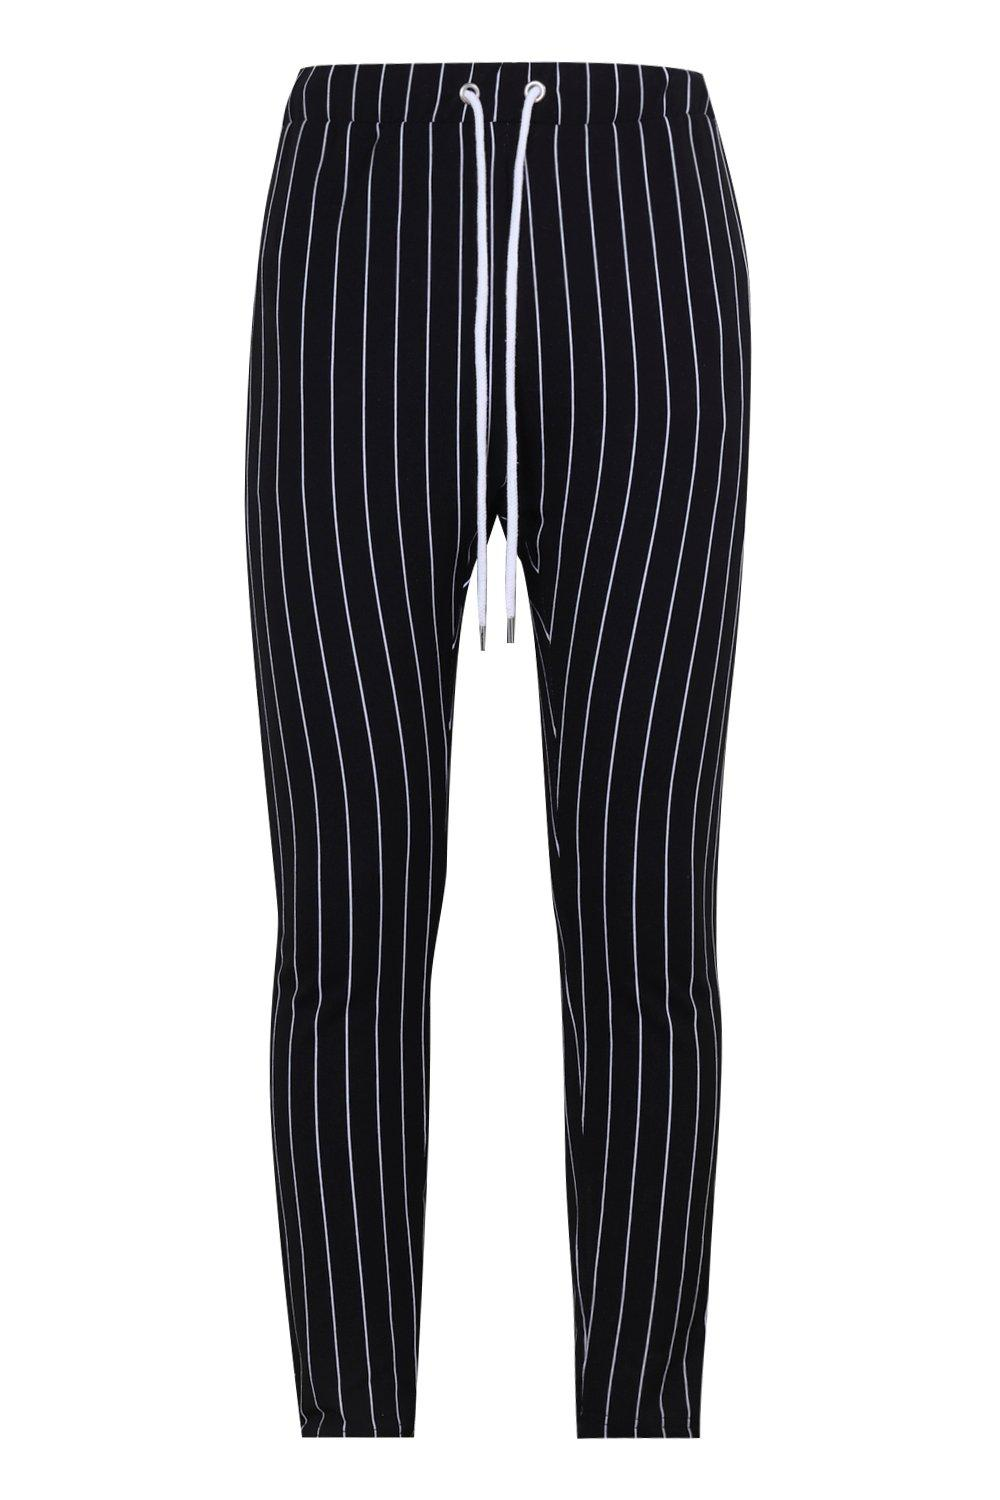 Fit Skinny Skinny black Striped Skinny Joggers Striped Joggers Fit Fit black Joggers Fit Skinny black Striped dZfPzxqv